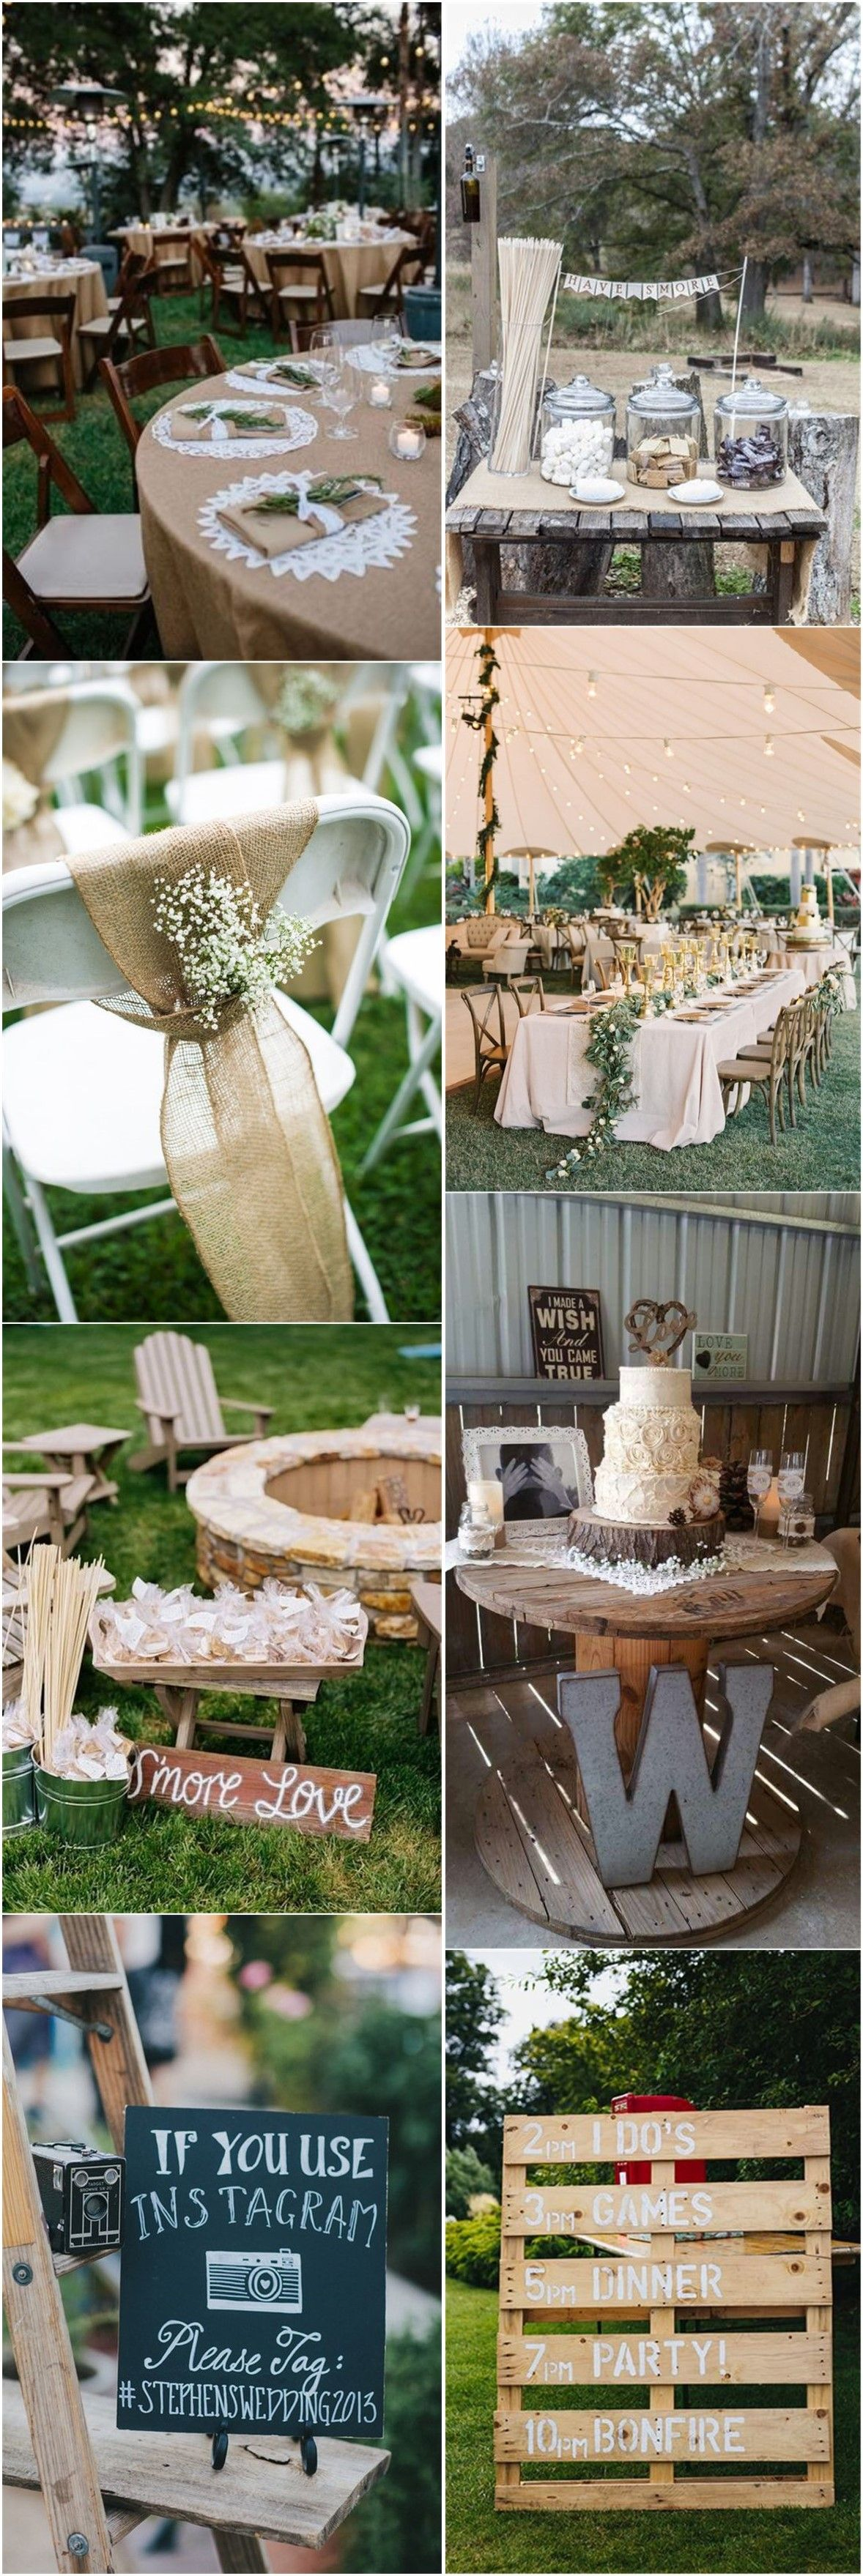 22 rustic backyard wedding decoration ideas on a budget backyard